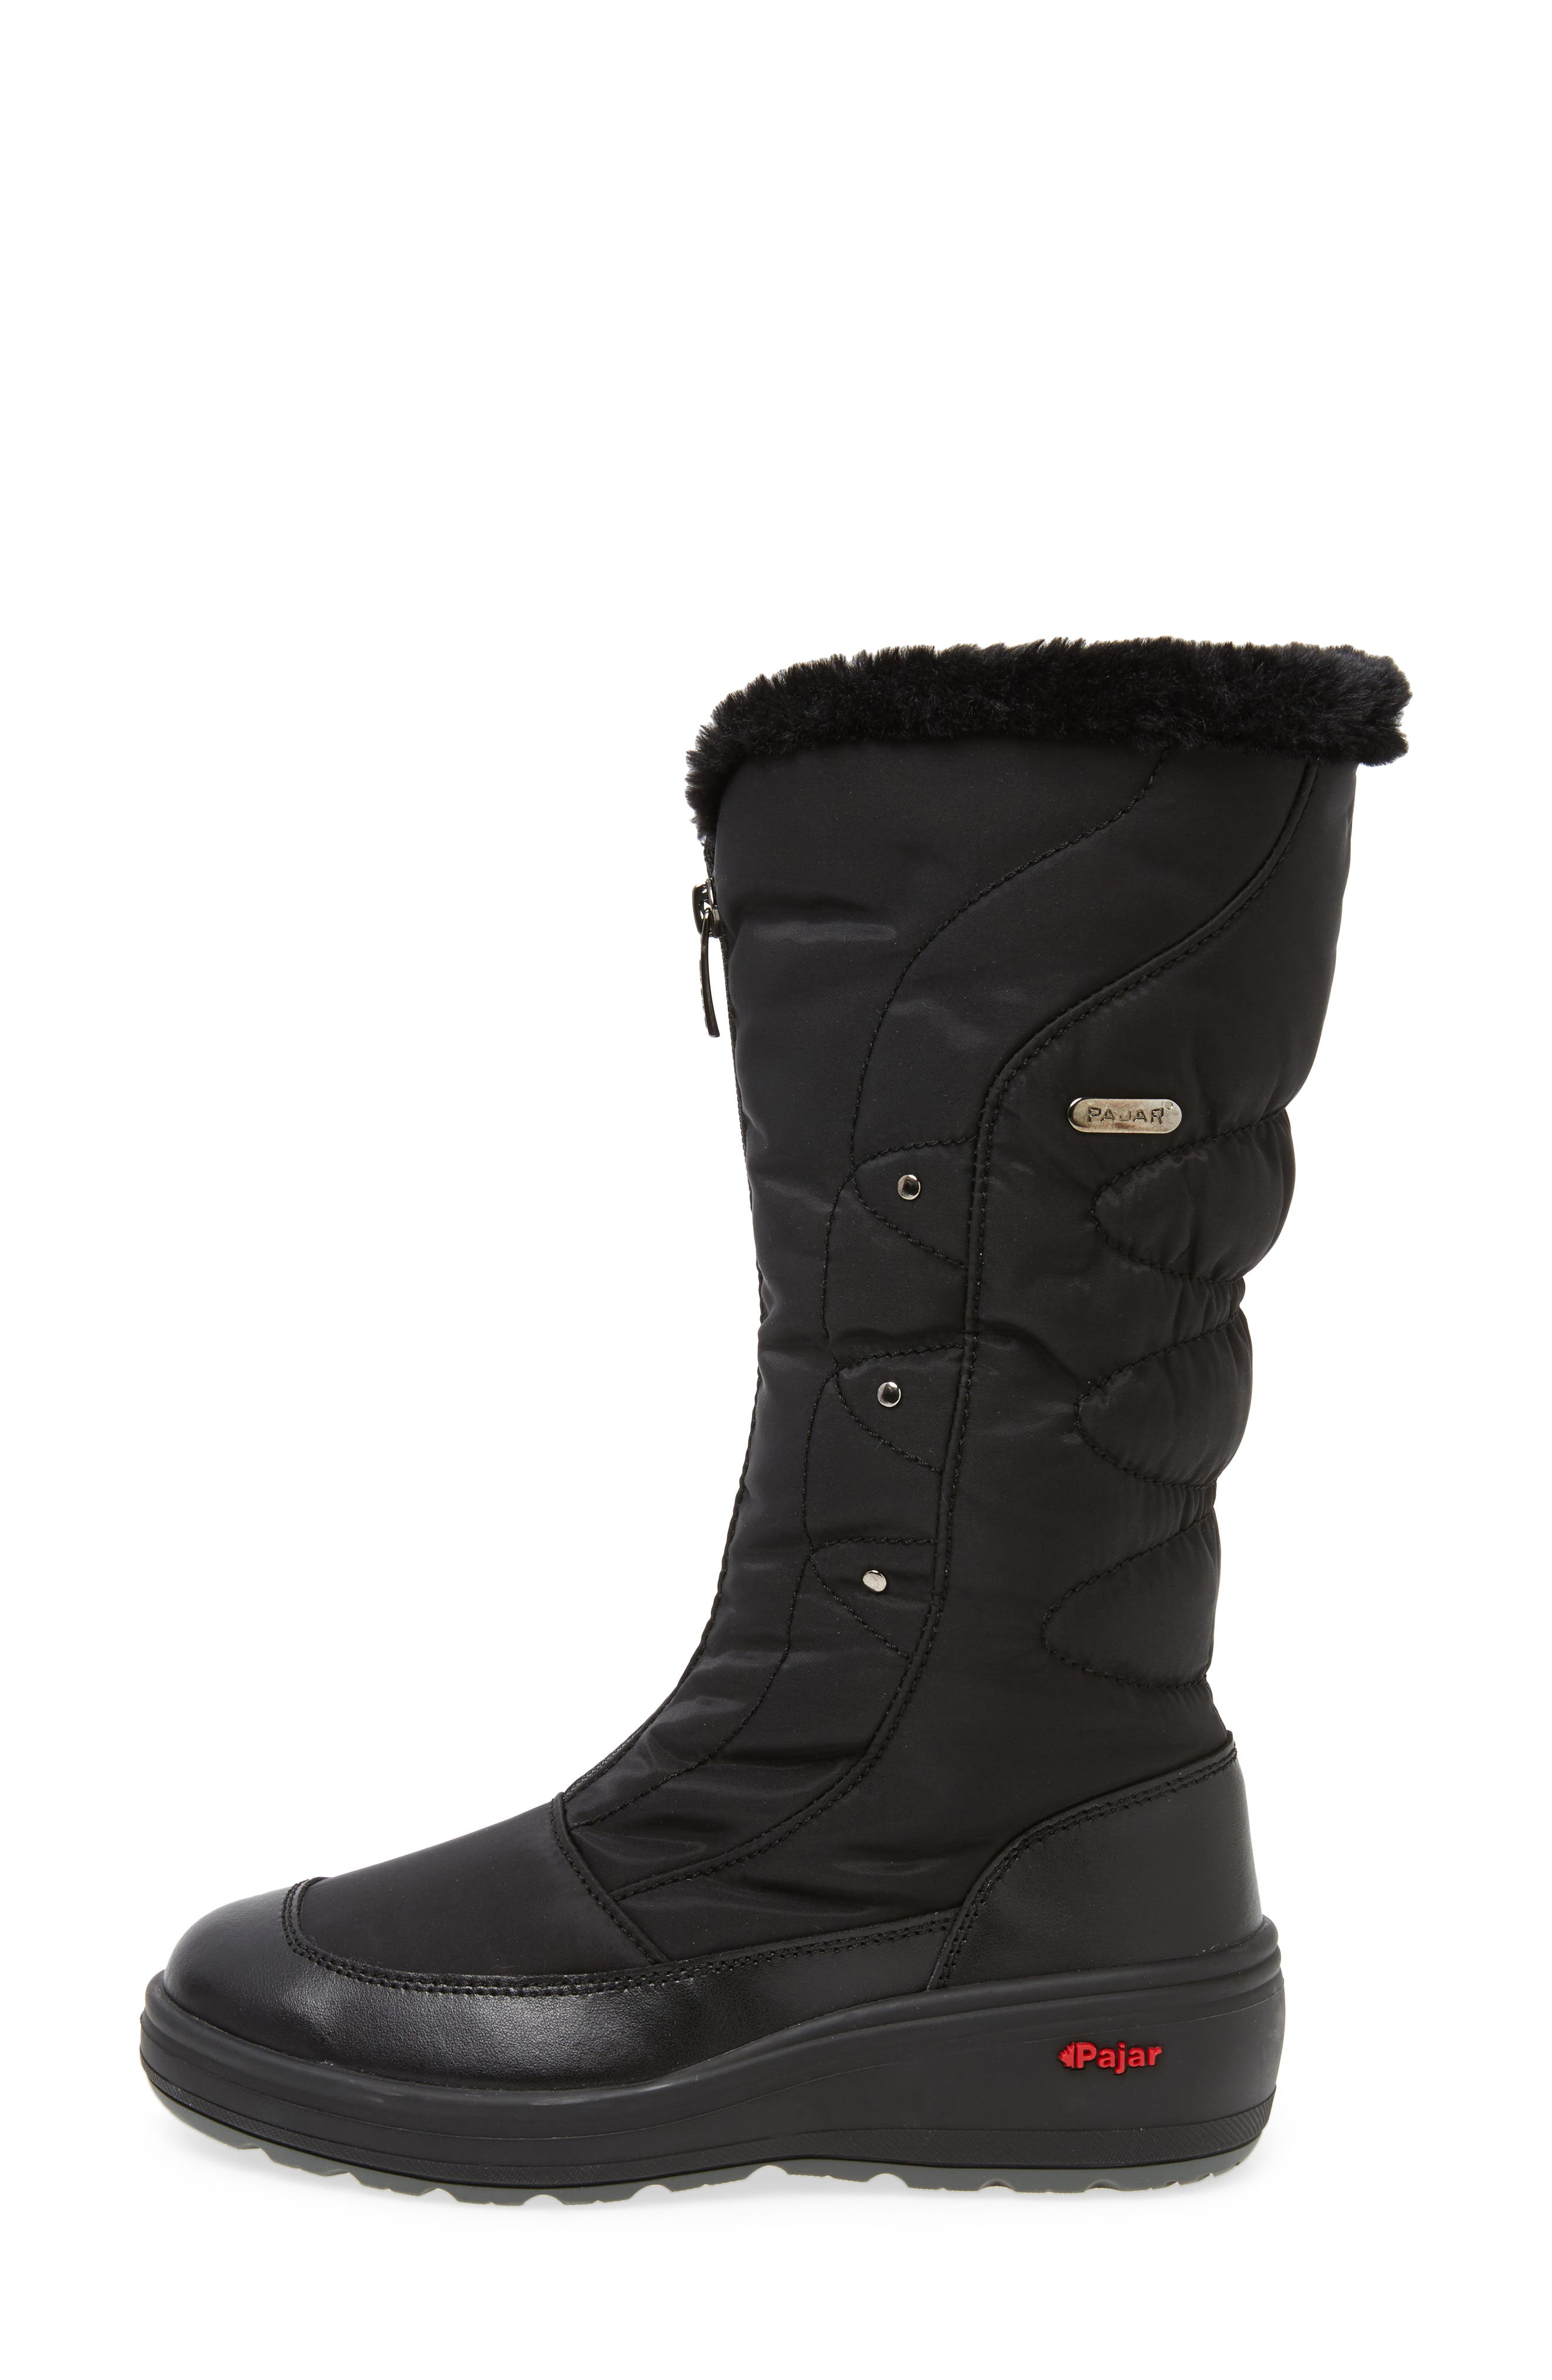 Fusion Weatherproof Boot,                             Alternate thumbnail 3, color,                             001